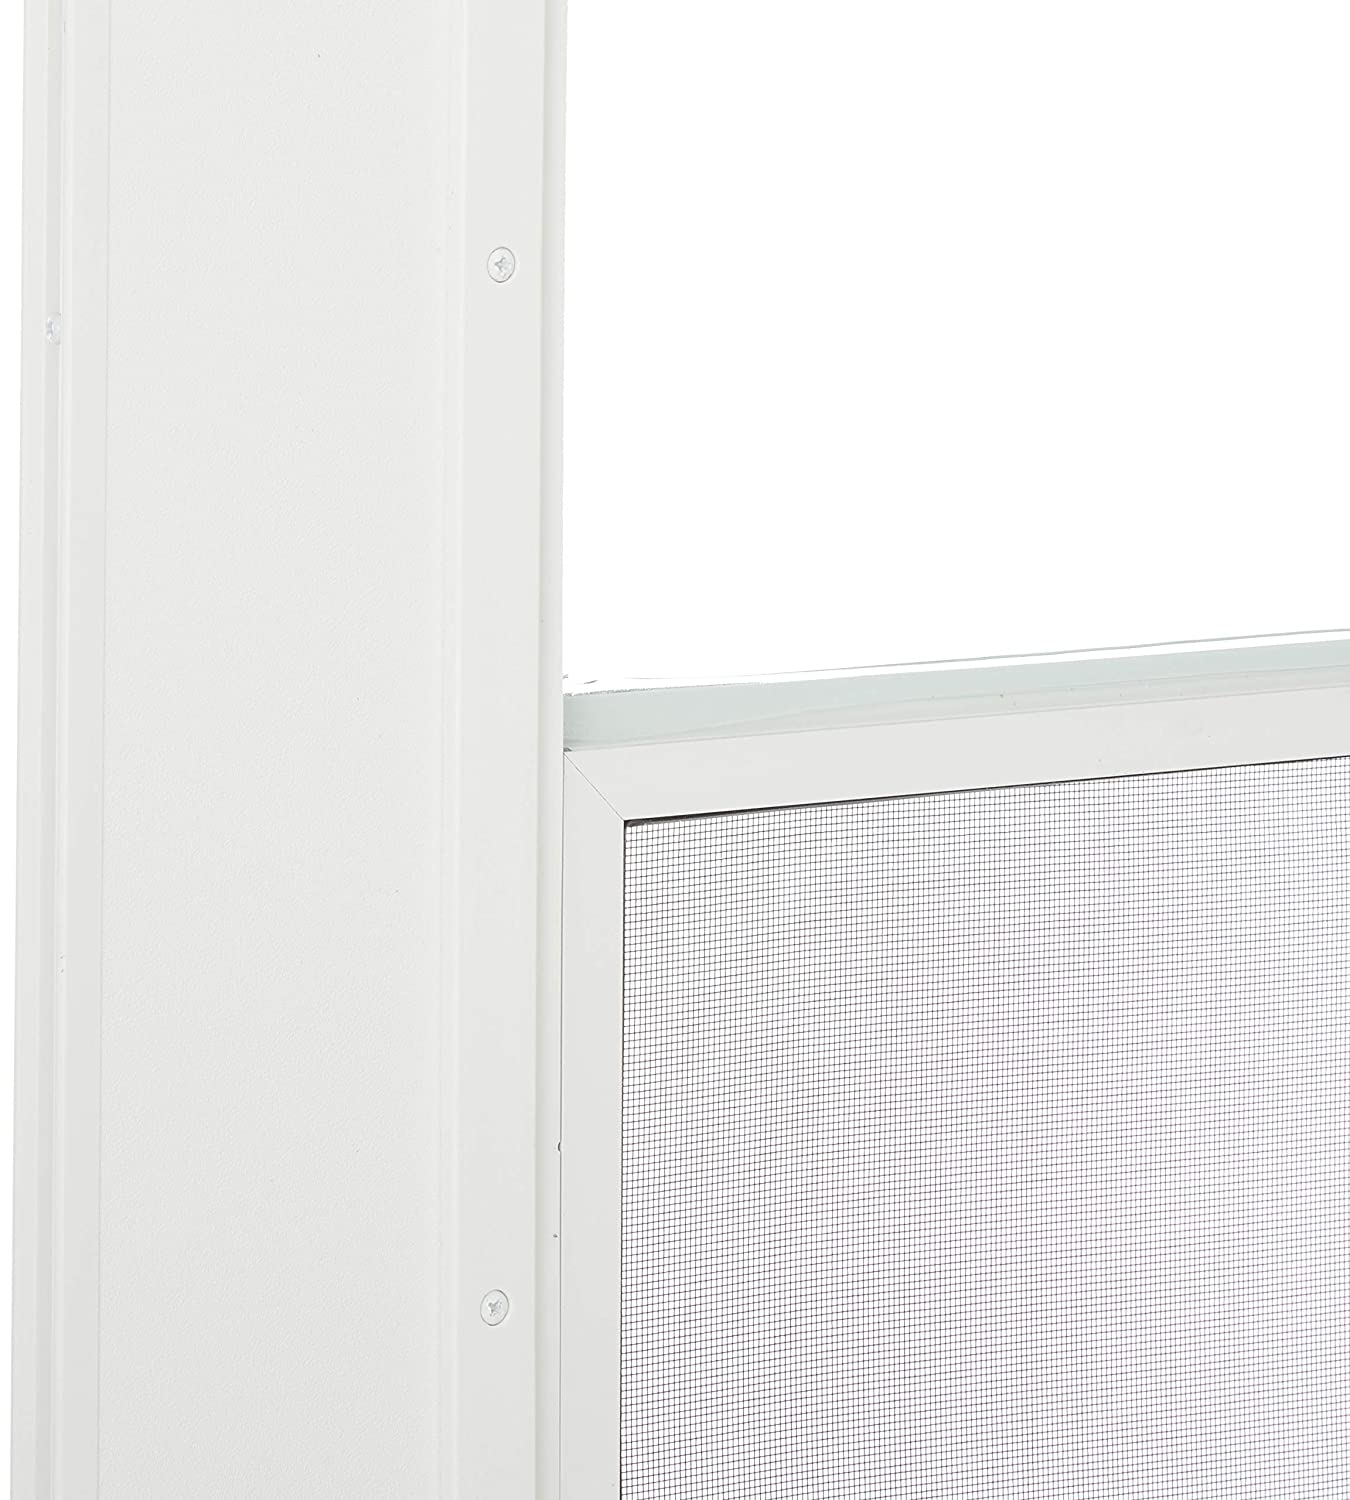 Larson 029831u 298ss 32 White Storm Door Amazon